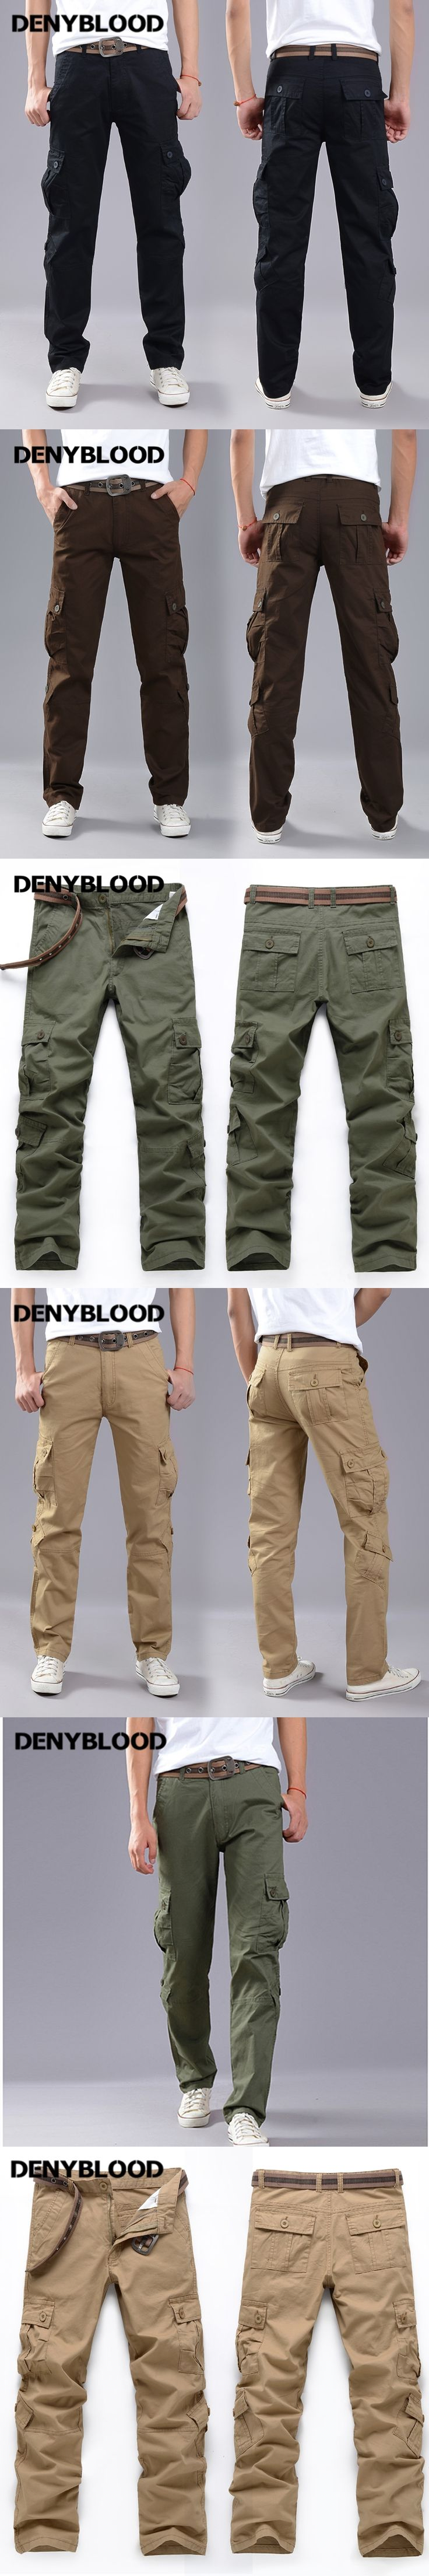 Denyblood Jeans Men's Cargo Pants Chinos Mutli Pockets Army Green Military Khaki High Quality Long Trousers Casual Pants 2172